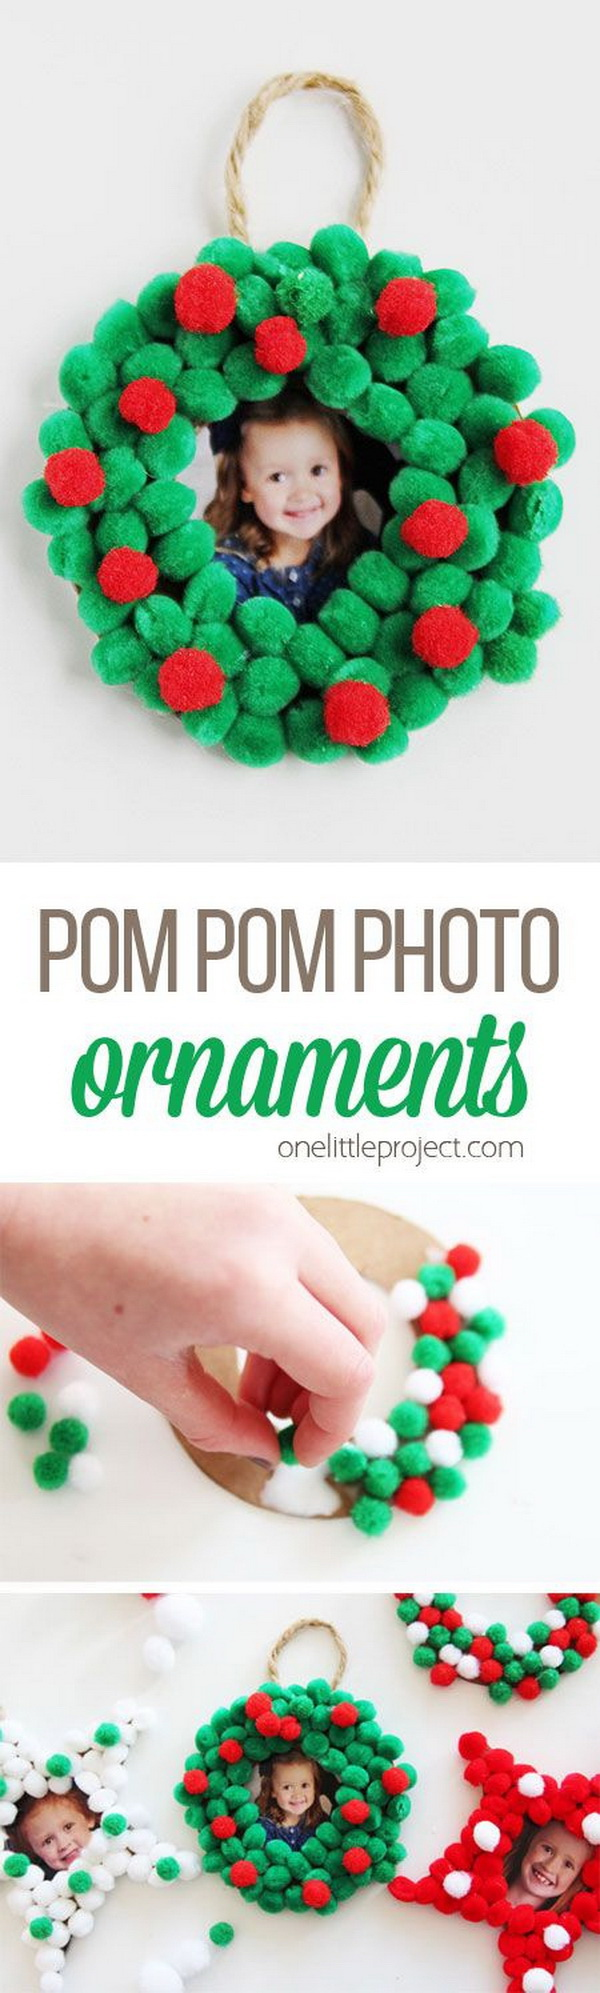 Pom Pom Christmas Photo Ornaments. Make these pom pom Christmas photo ornaments to display your pictures on your tree for years to come, or give as a gift! It is super easy that even your kids can get involved!